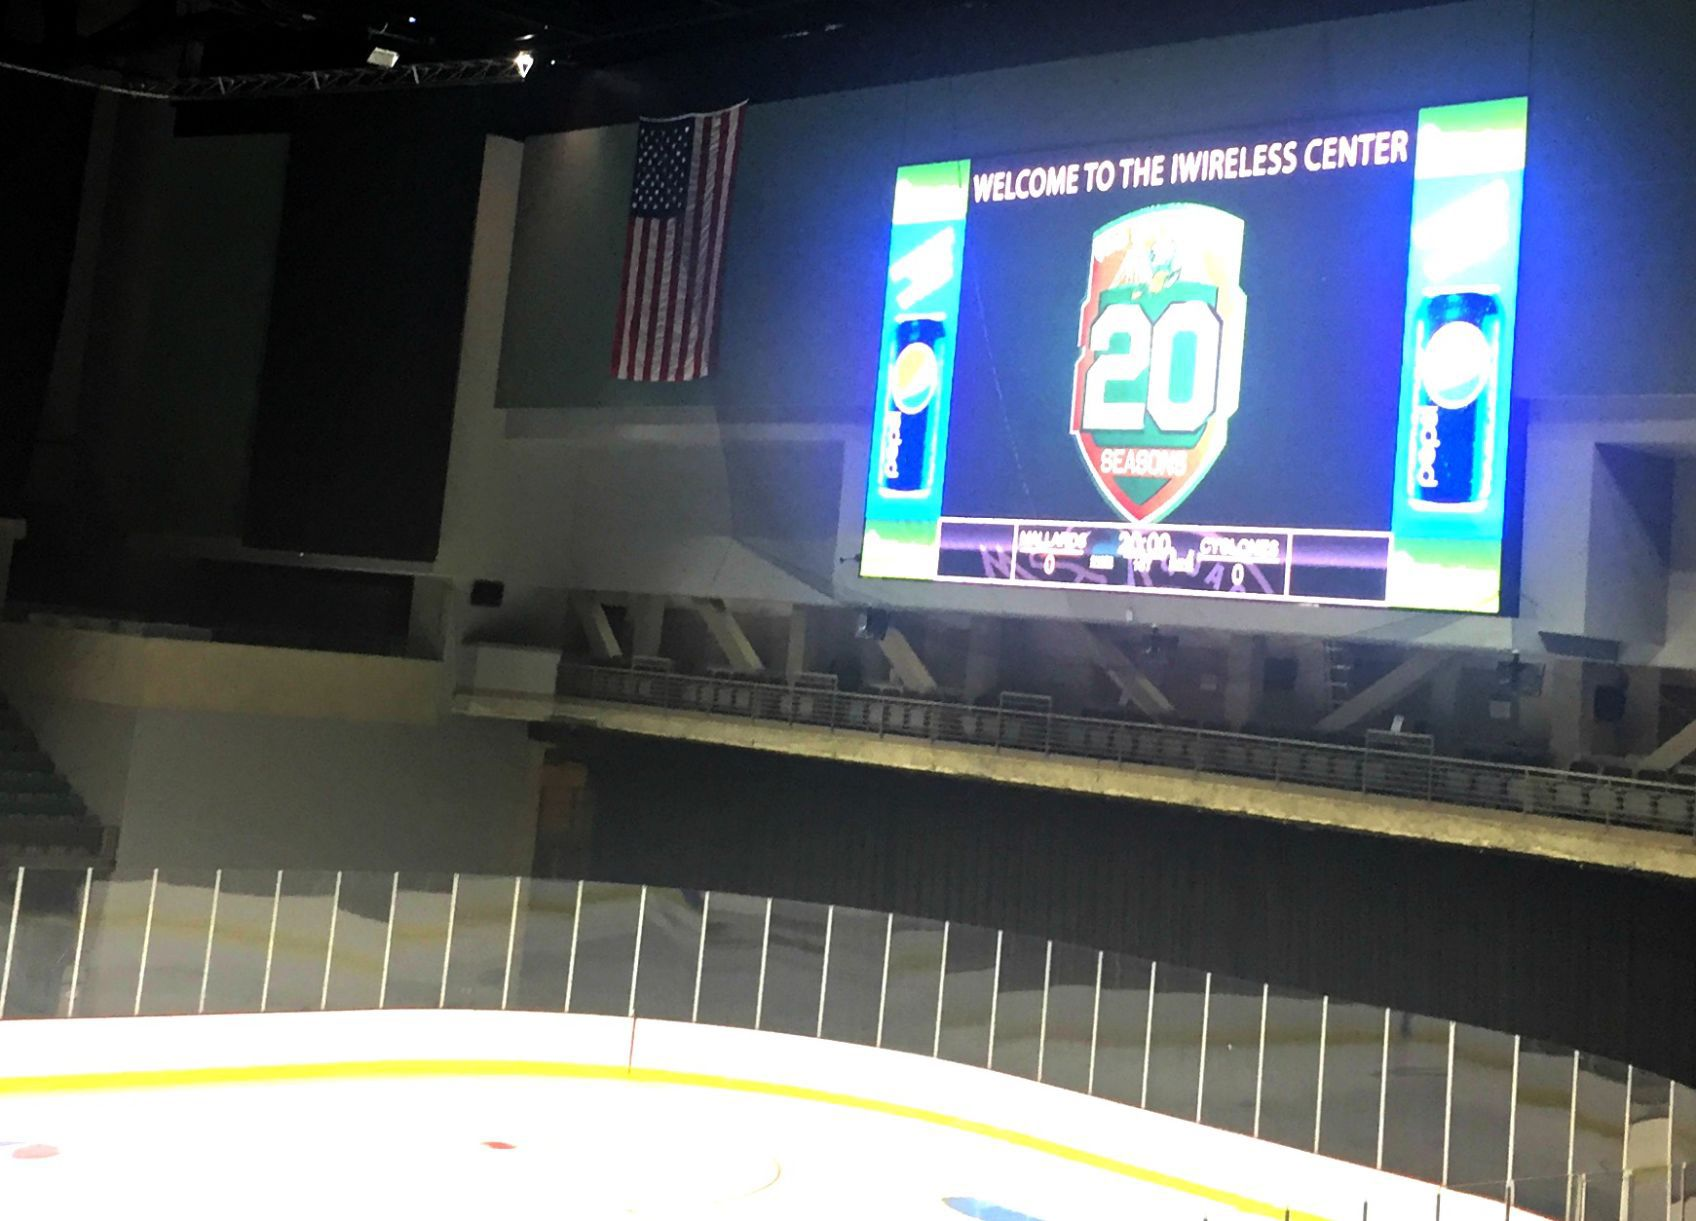 Iwireless Center Unveils Bigger And Flashier Led Video Wall Local Rh  Qctimes Com TD Garden Box Office Hours Oracle Arena Box Office Hours